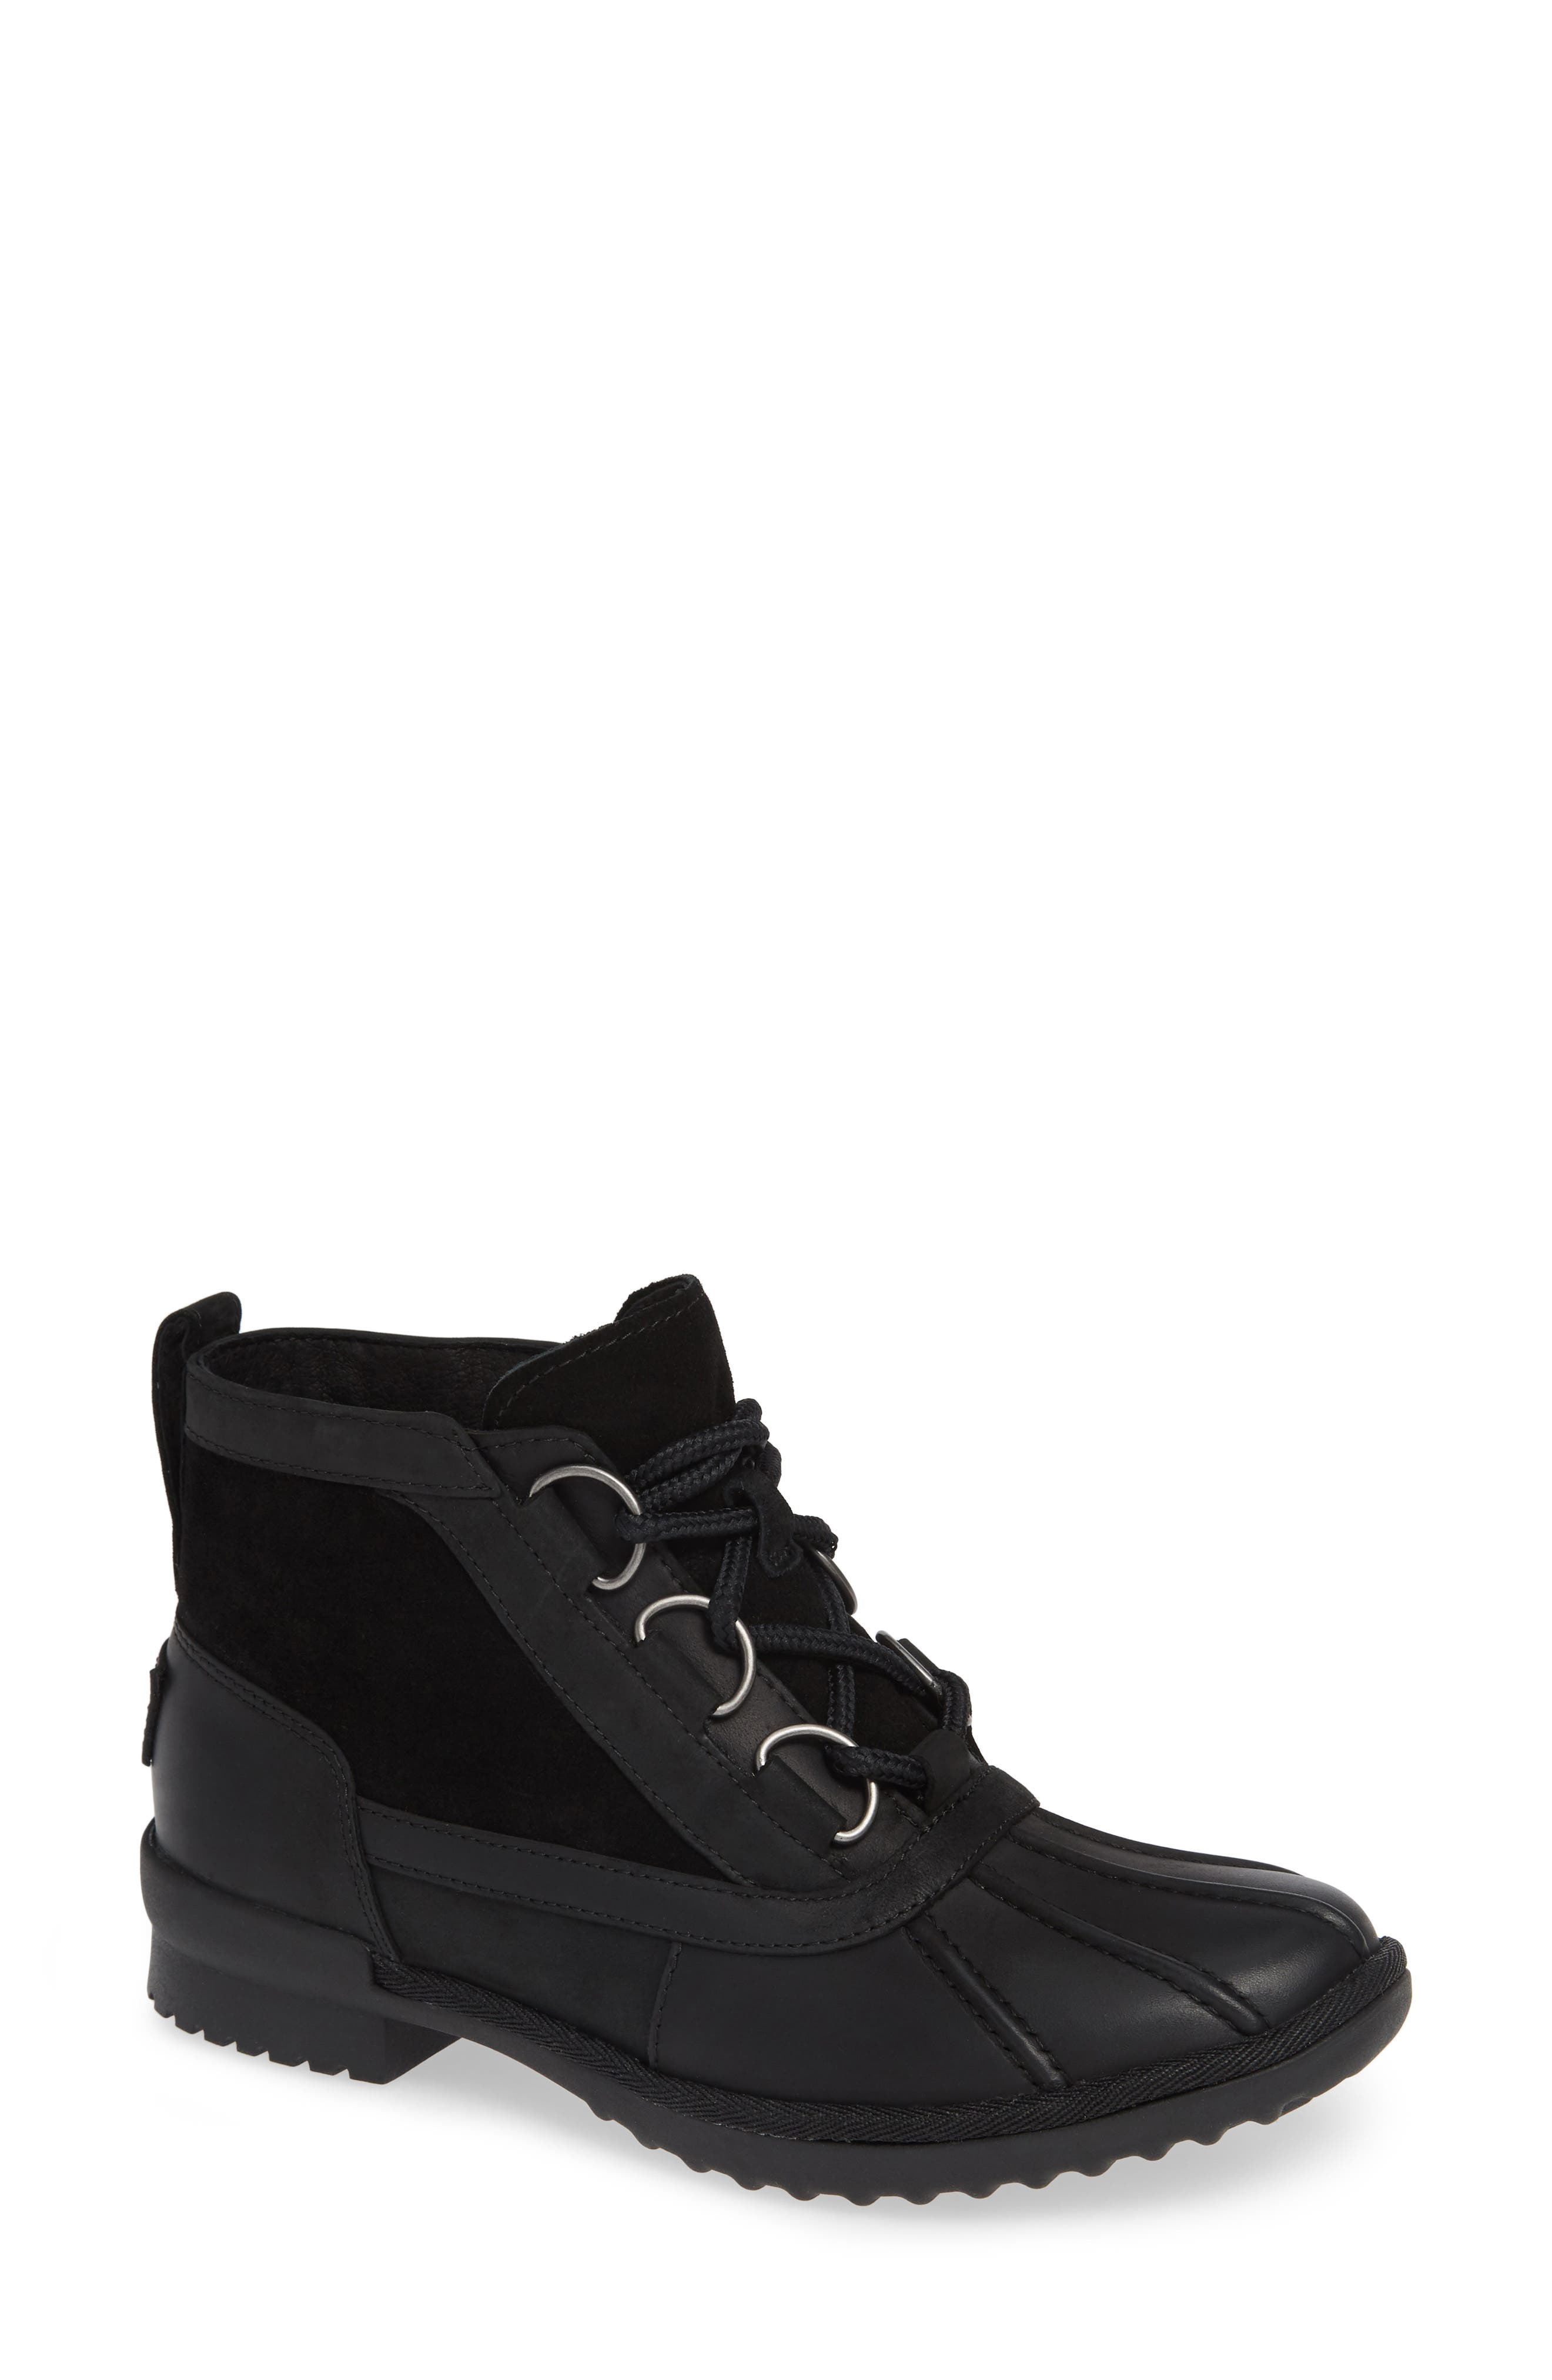 Heather Waterproof Lace-Up Bootie,                         Main,                         color, BLACK LEATHER